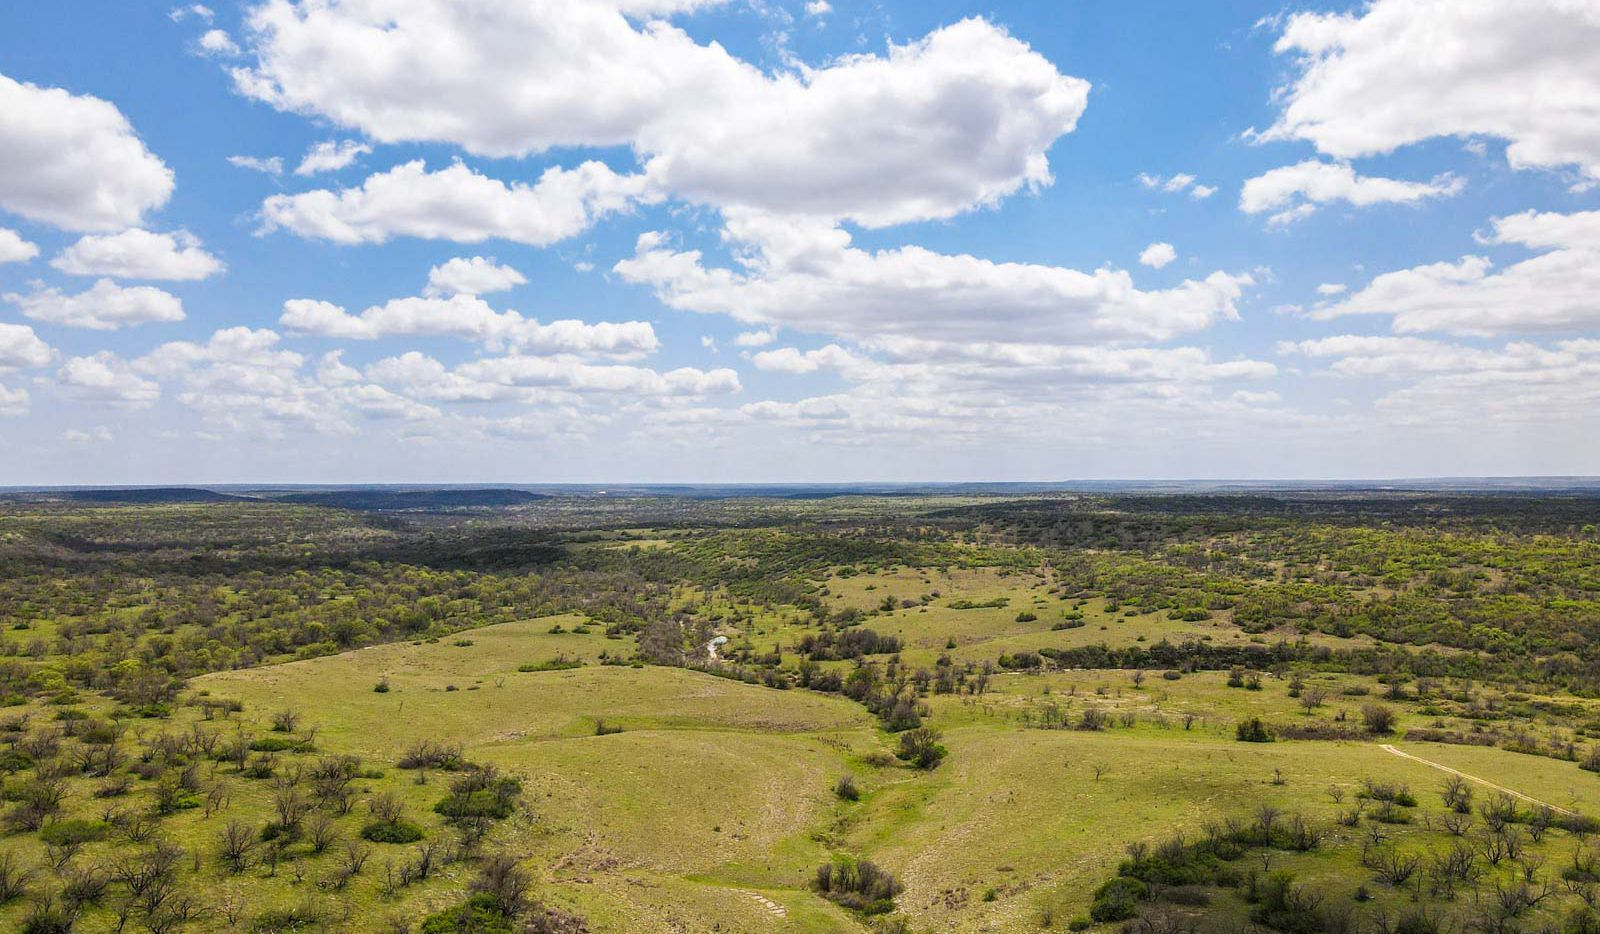 The almost 9,400-acre Tecumseh Ranch is near the town of Throckmorton.